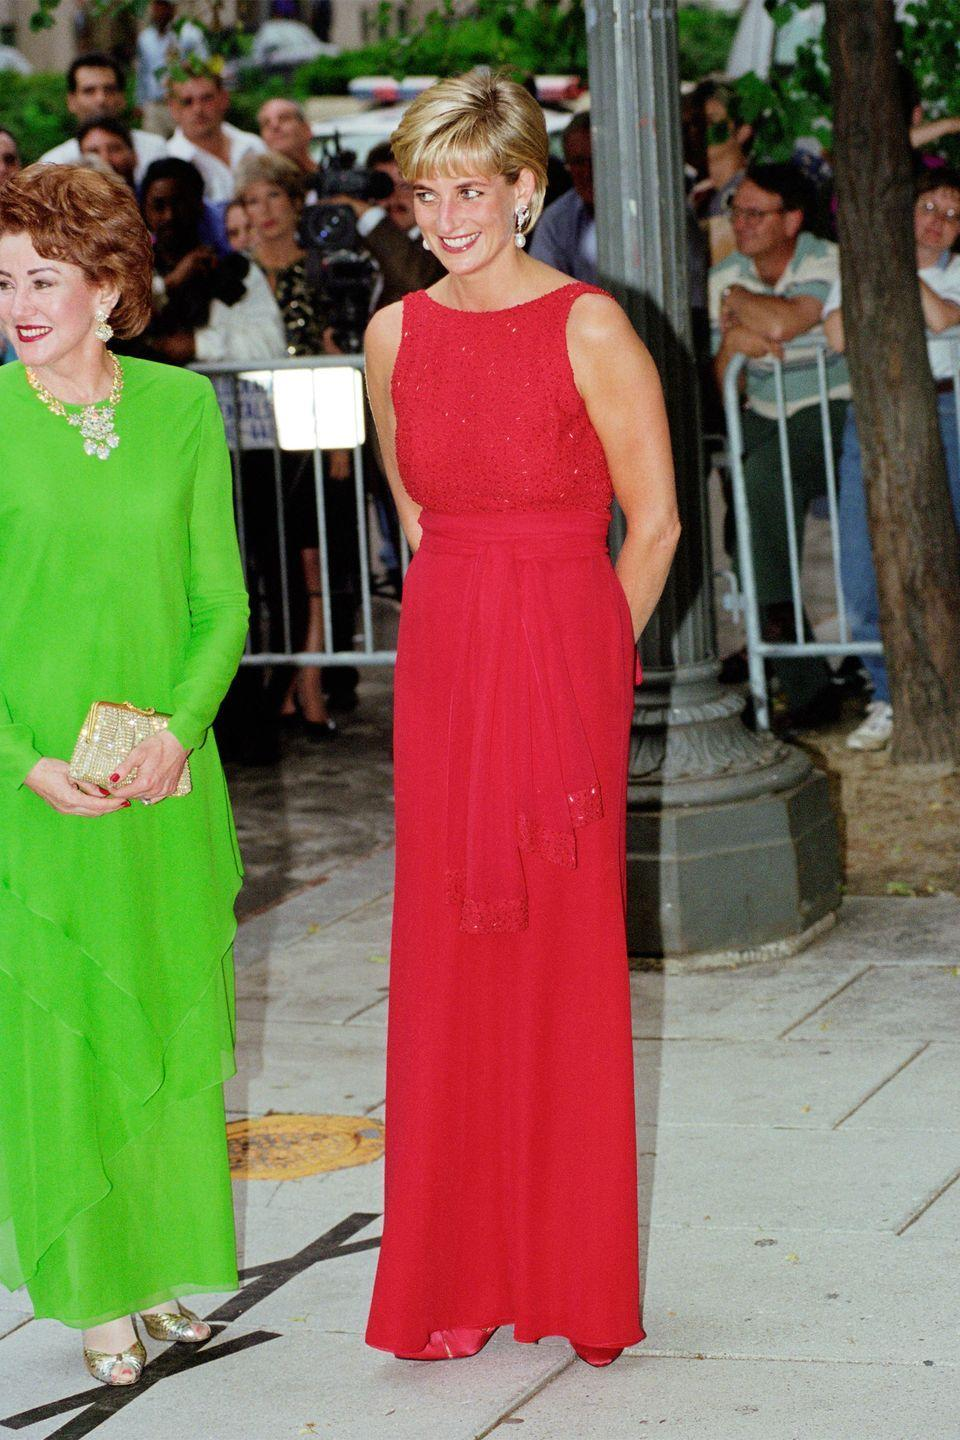 <p>In a red dress by Jacques Azagury at an event for the American Red Cross in Washington, D.C. </p>